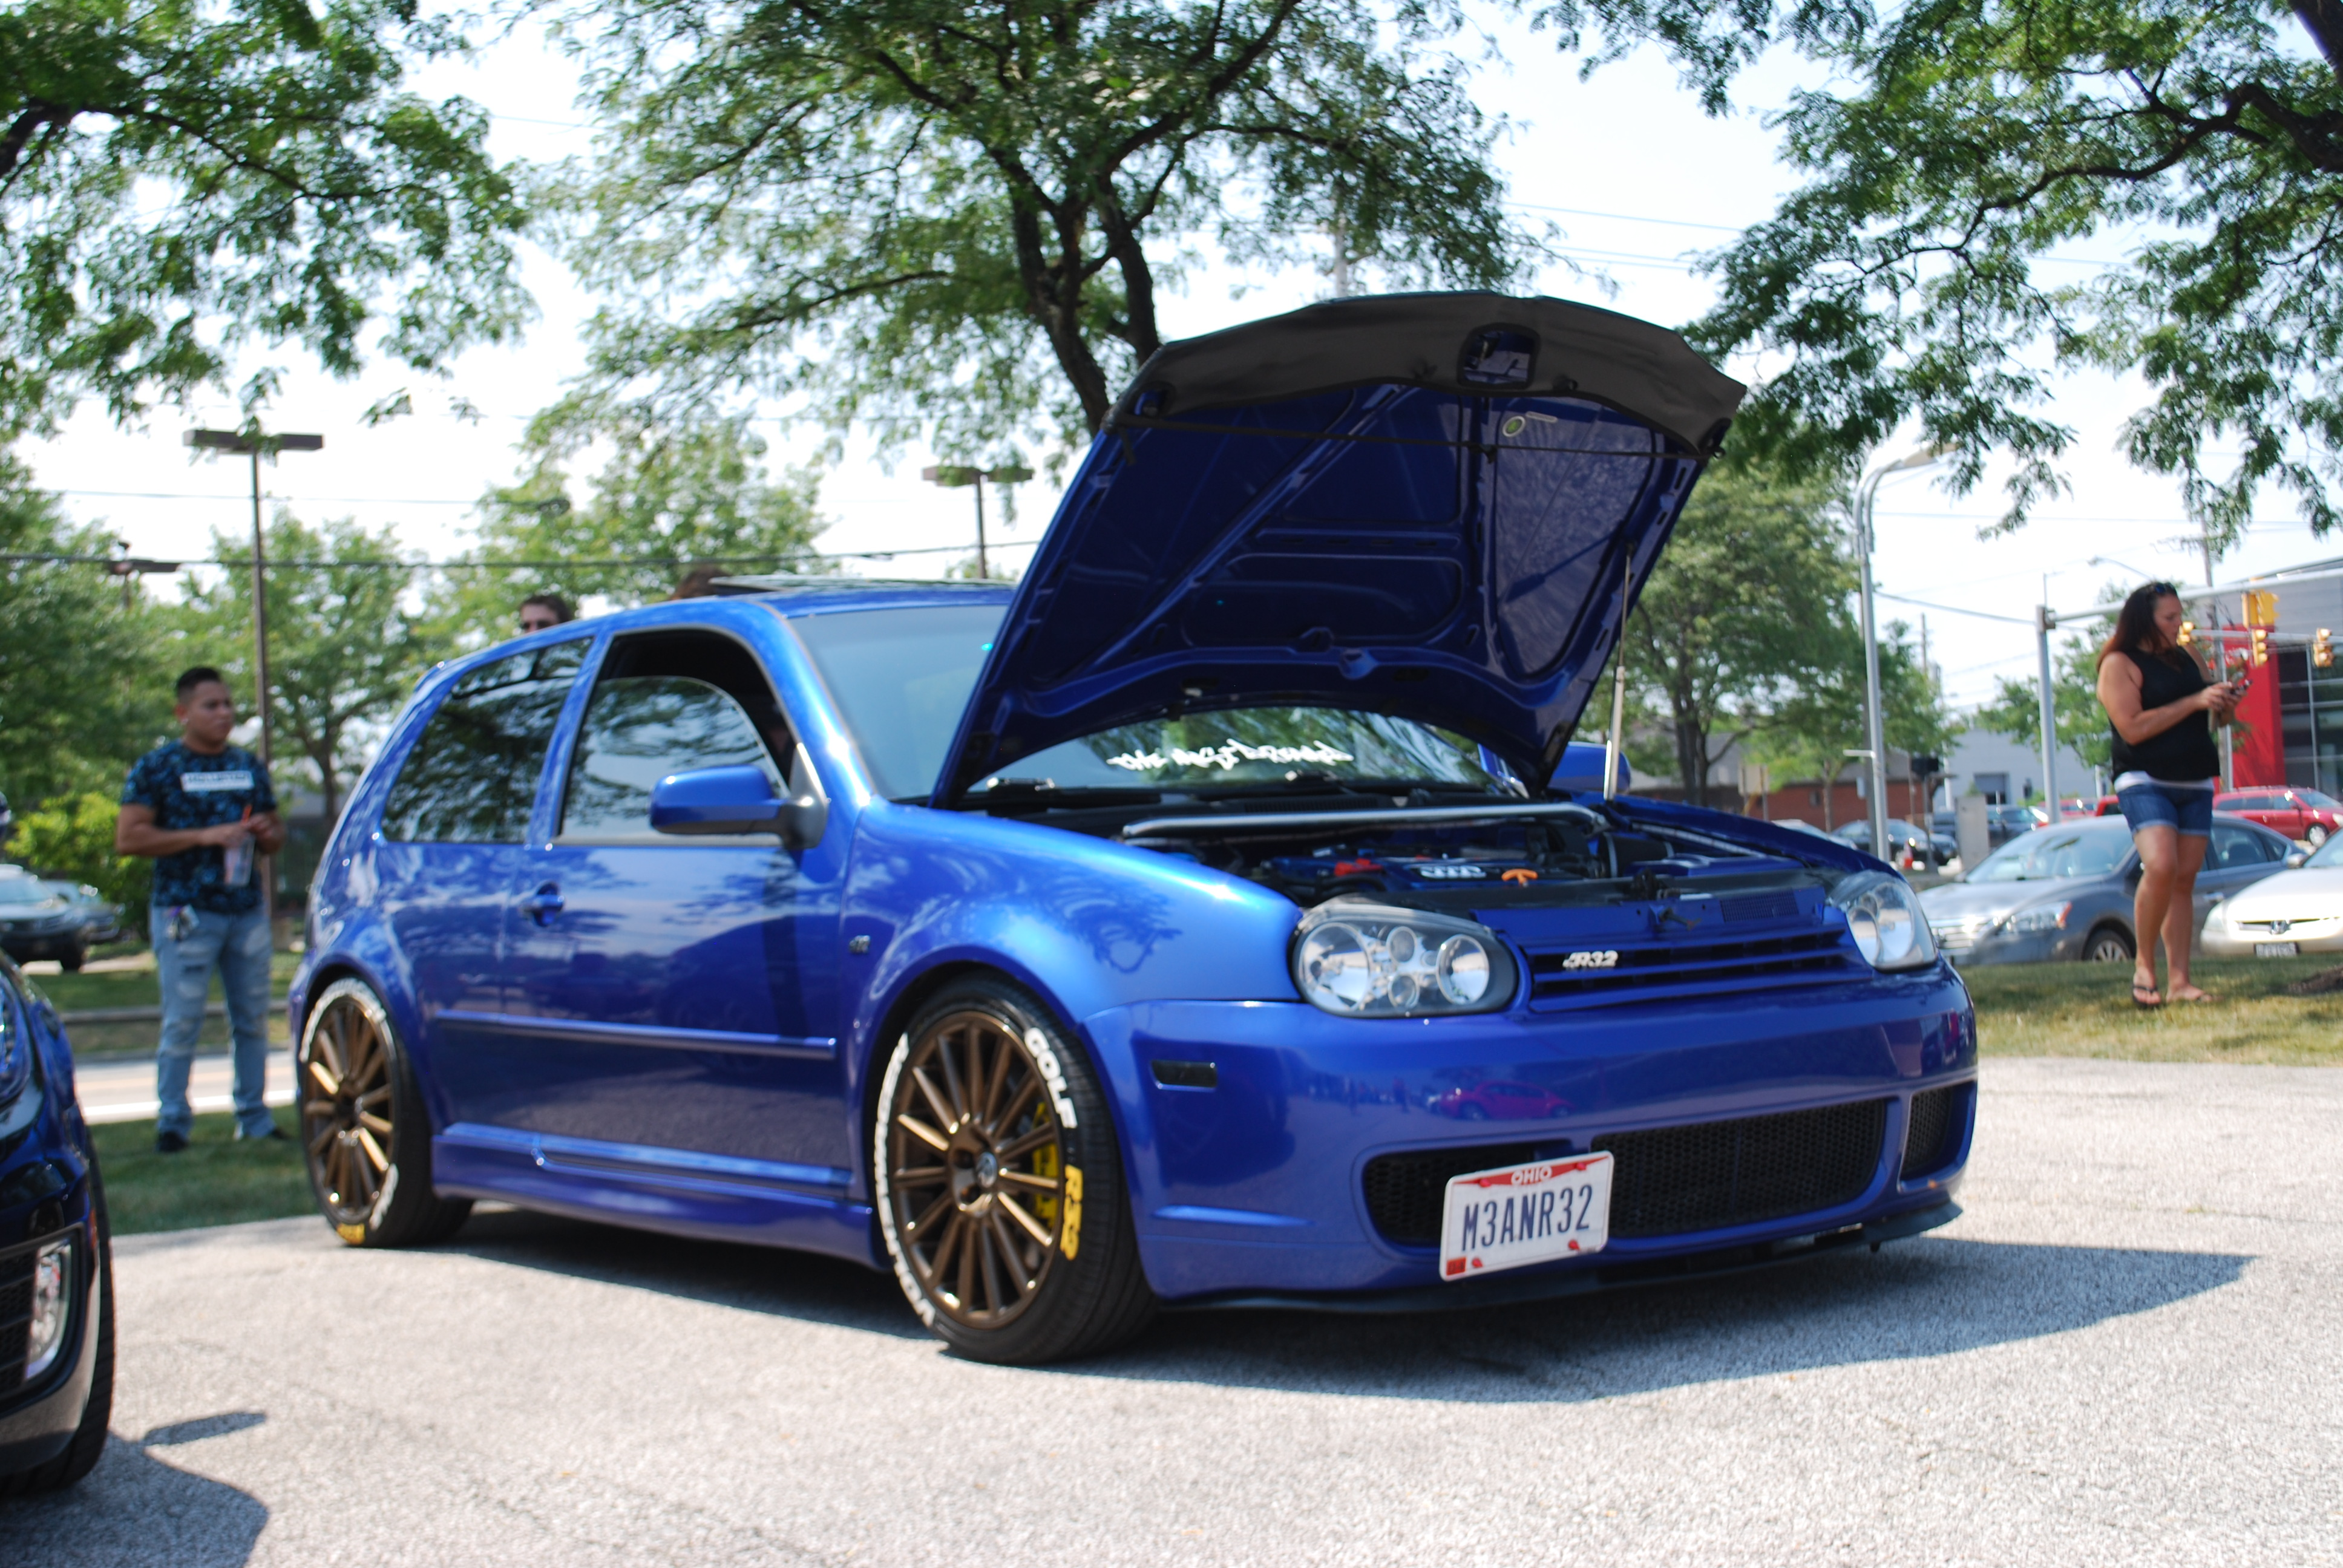 Gallery: 7th Annual Cruise-In at Classic Volkswagen - VWVortex